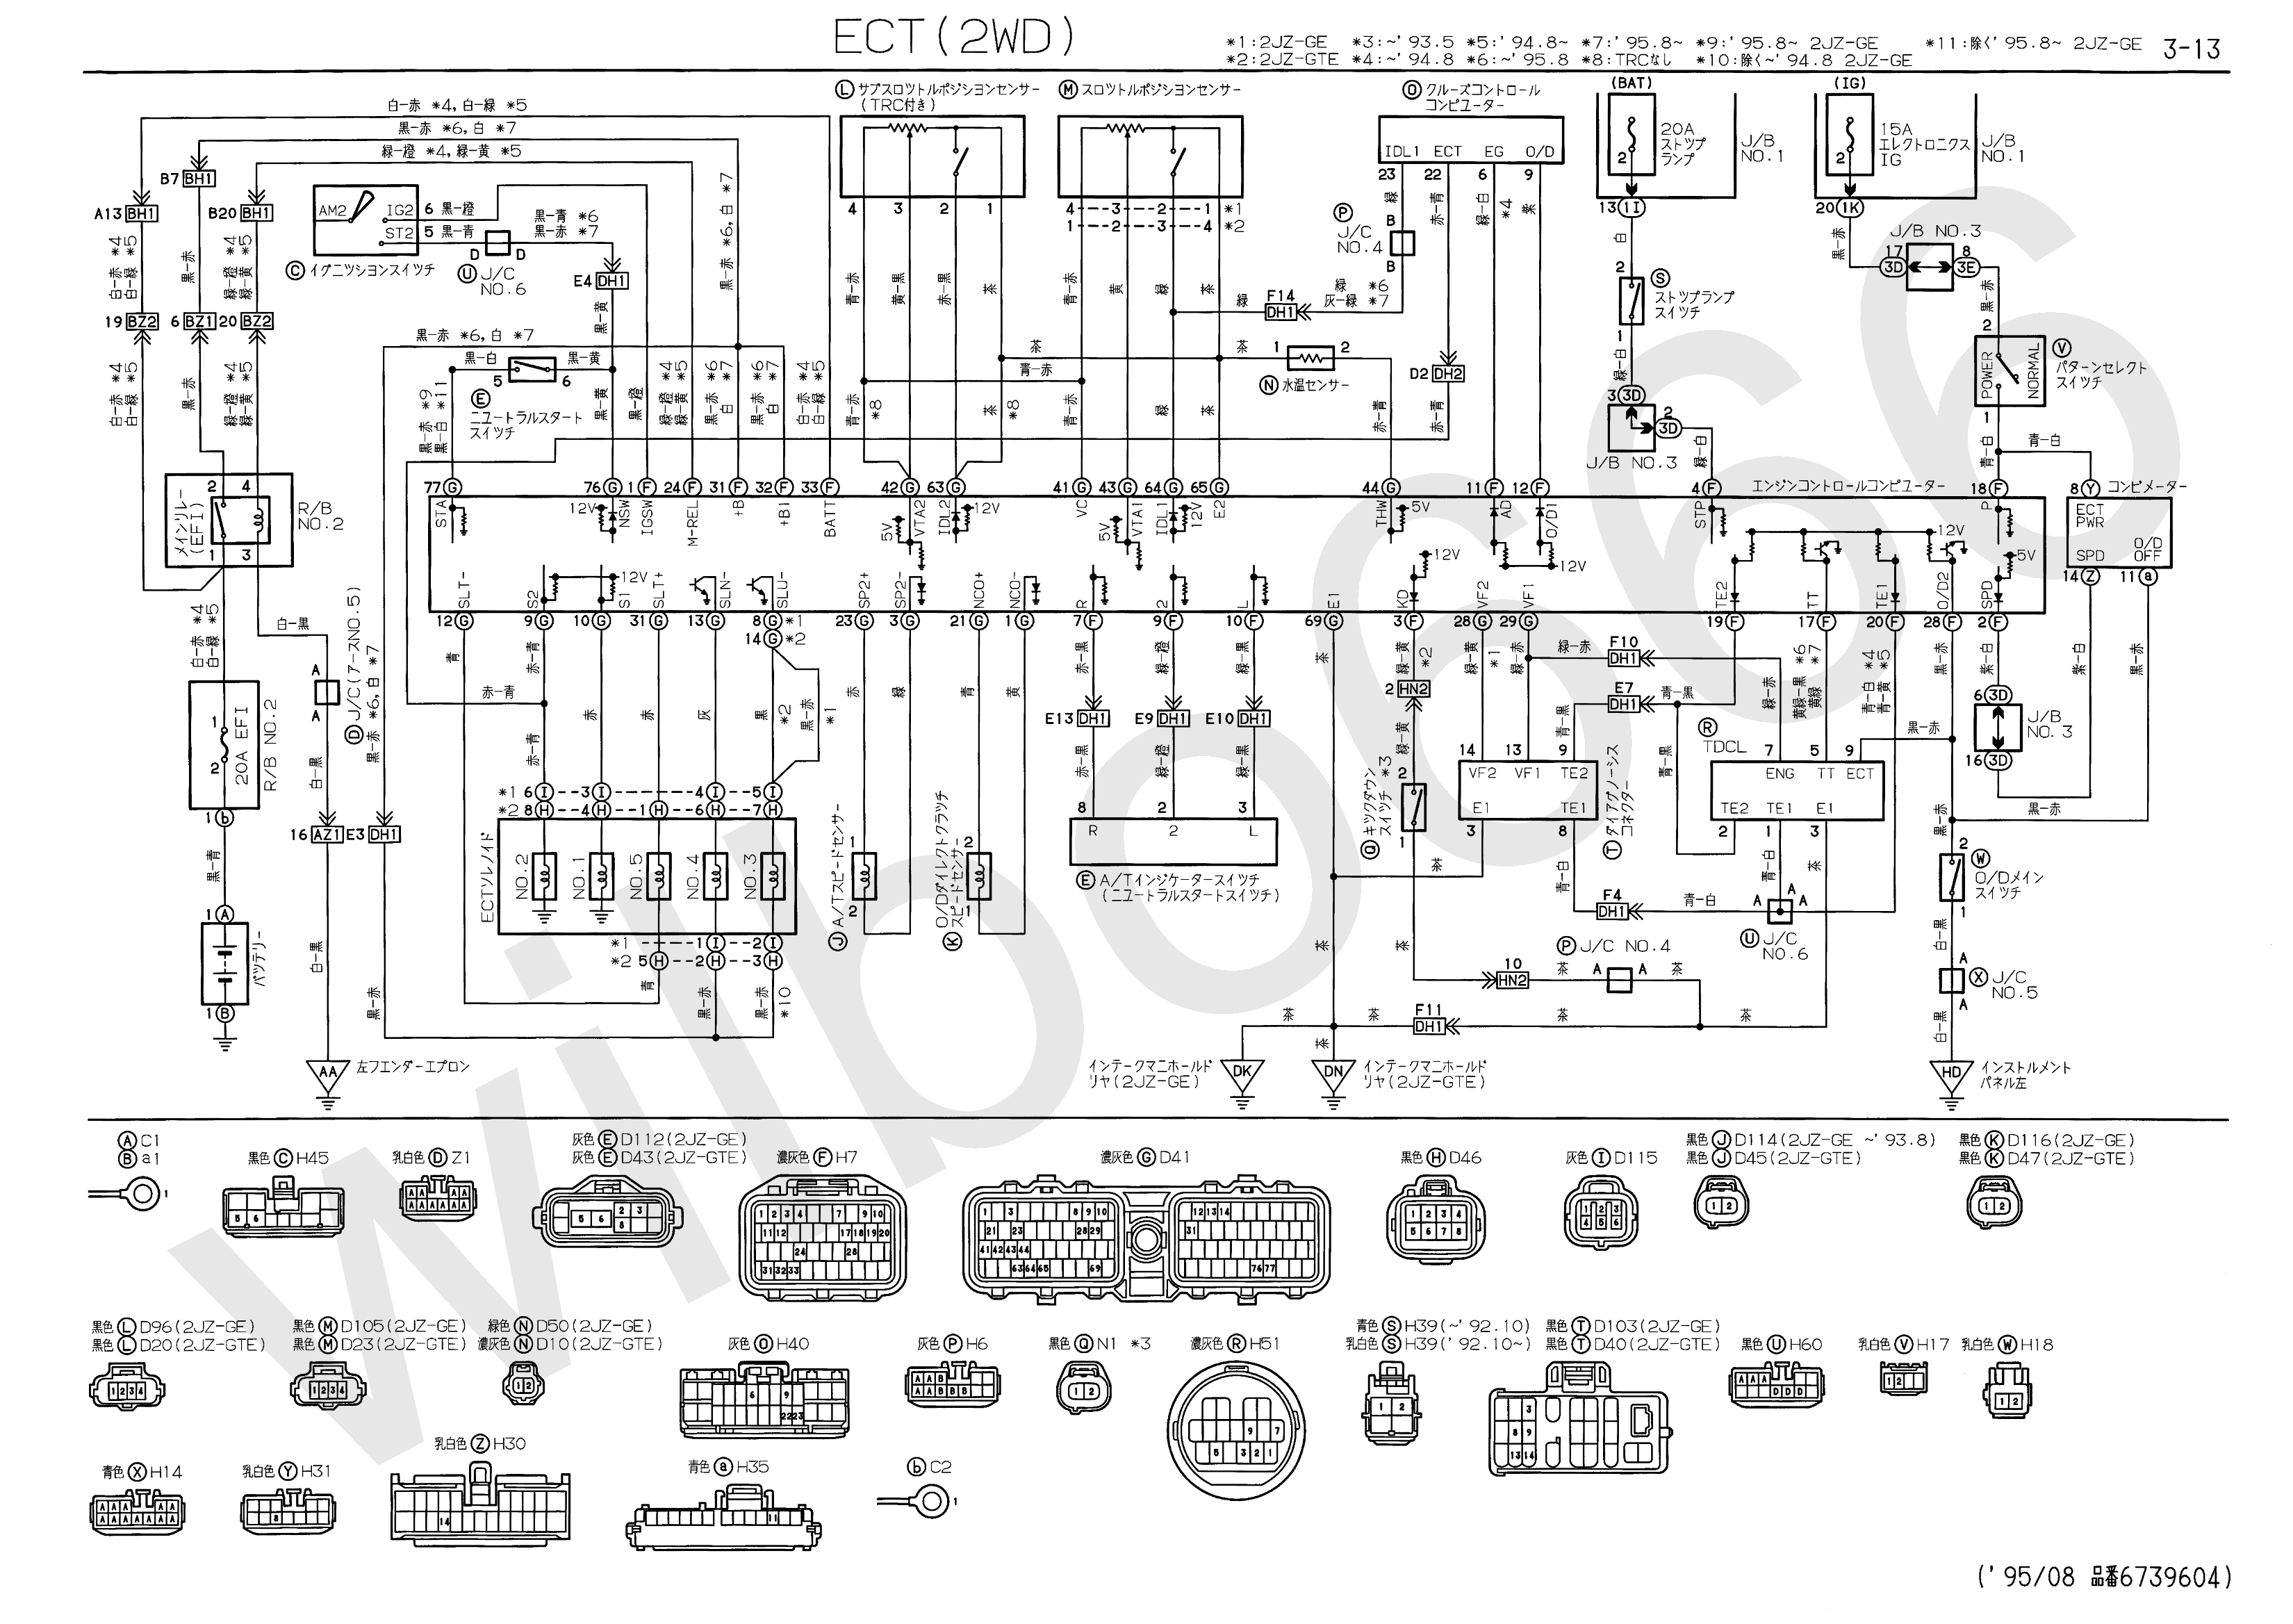 2004 chevy cavalier window wiring diagram 2004 discover your 2011 nissan sentra blower motor diagram